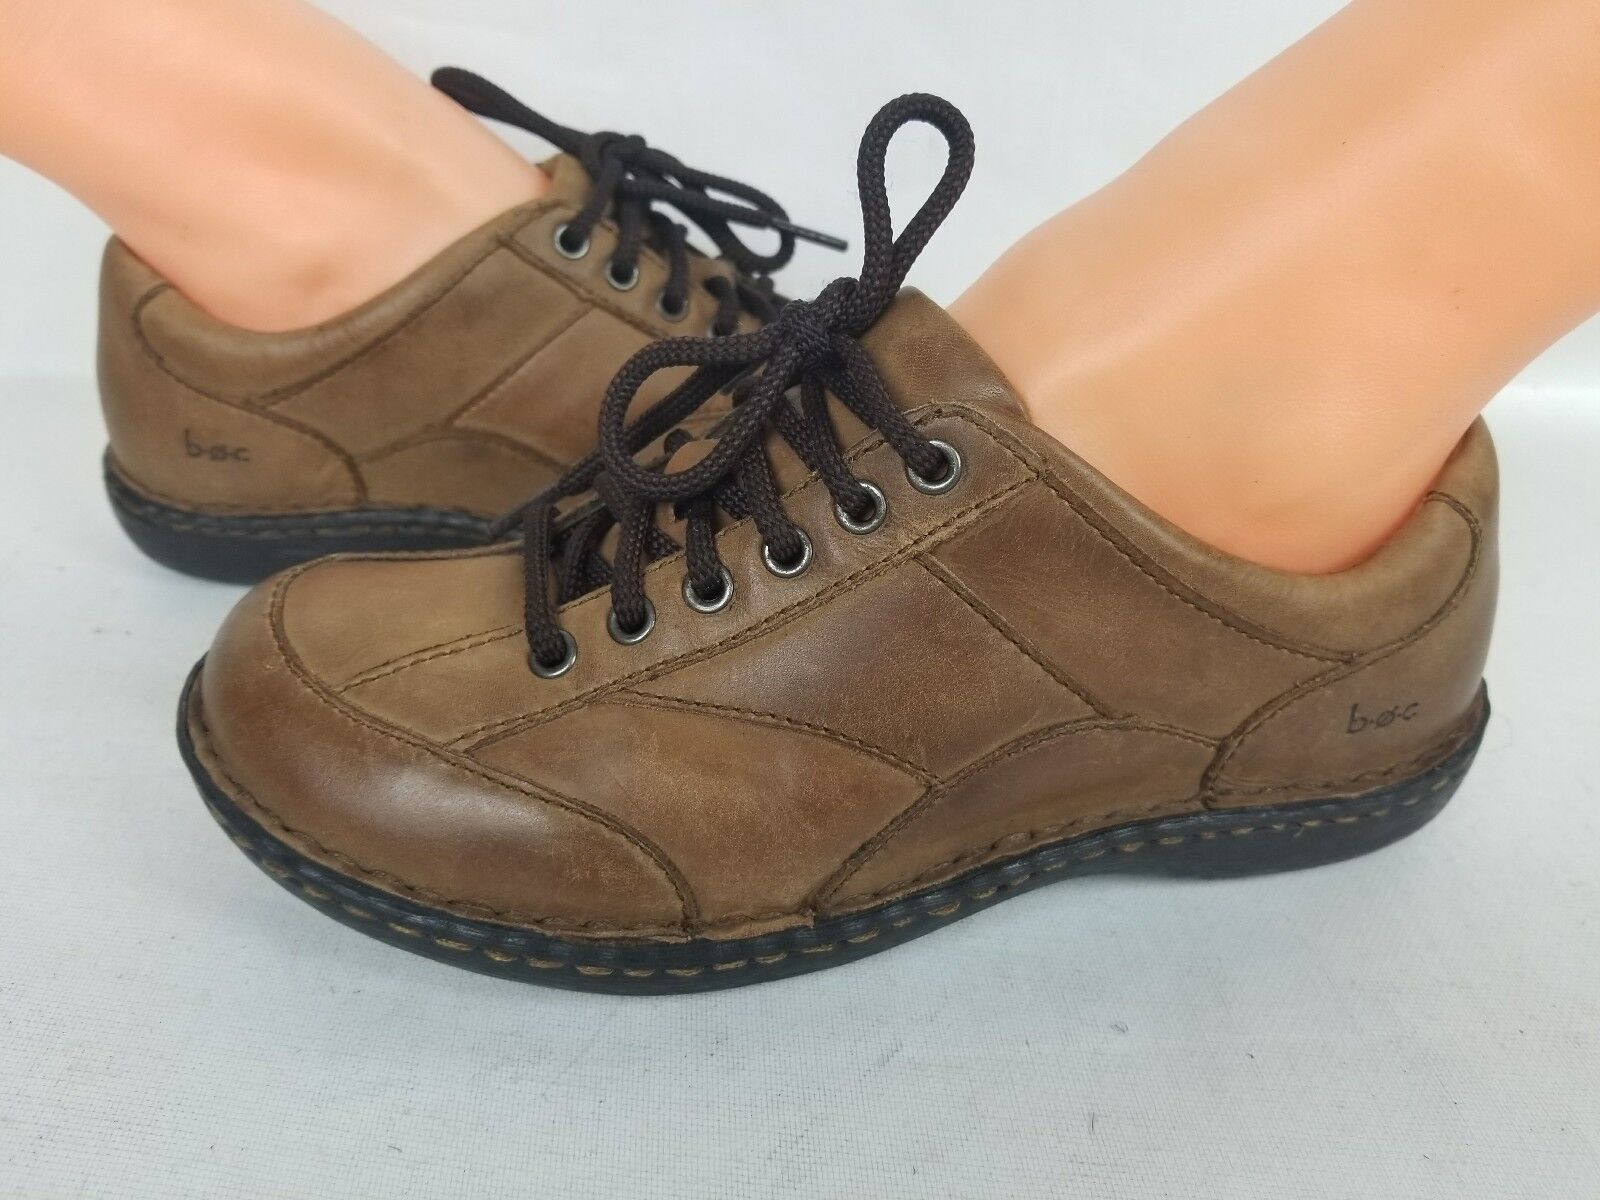 Born Comfort  Athletic Training Walking Sneakers Leather Woms shoes SZ 6.5